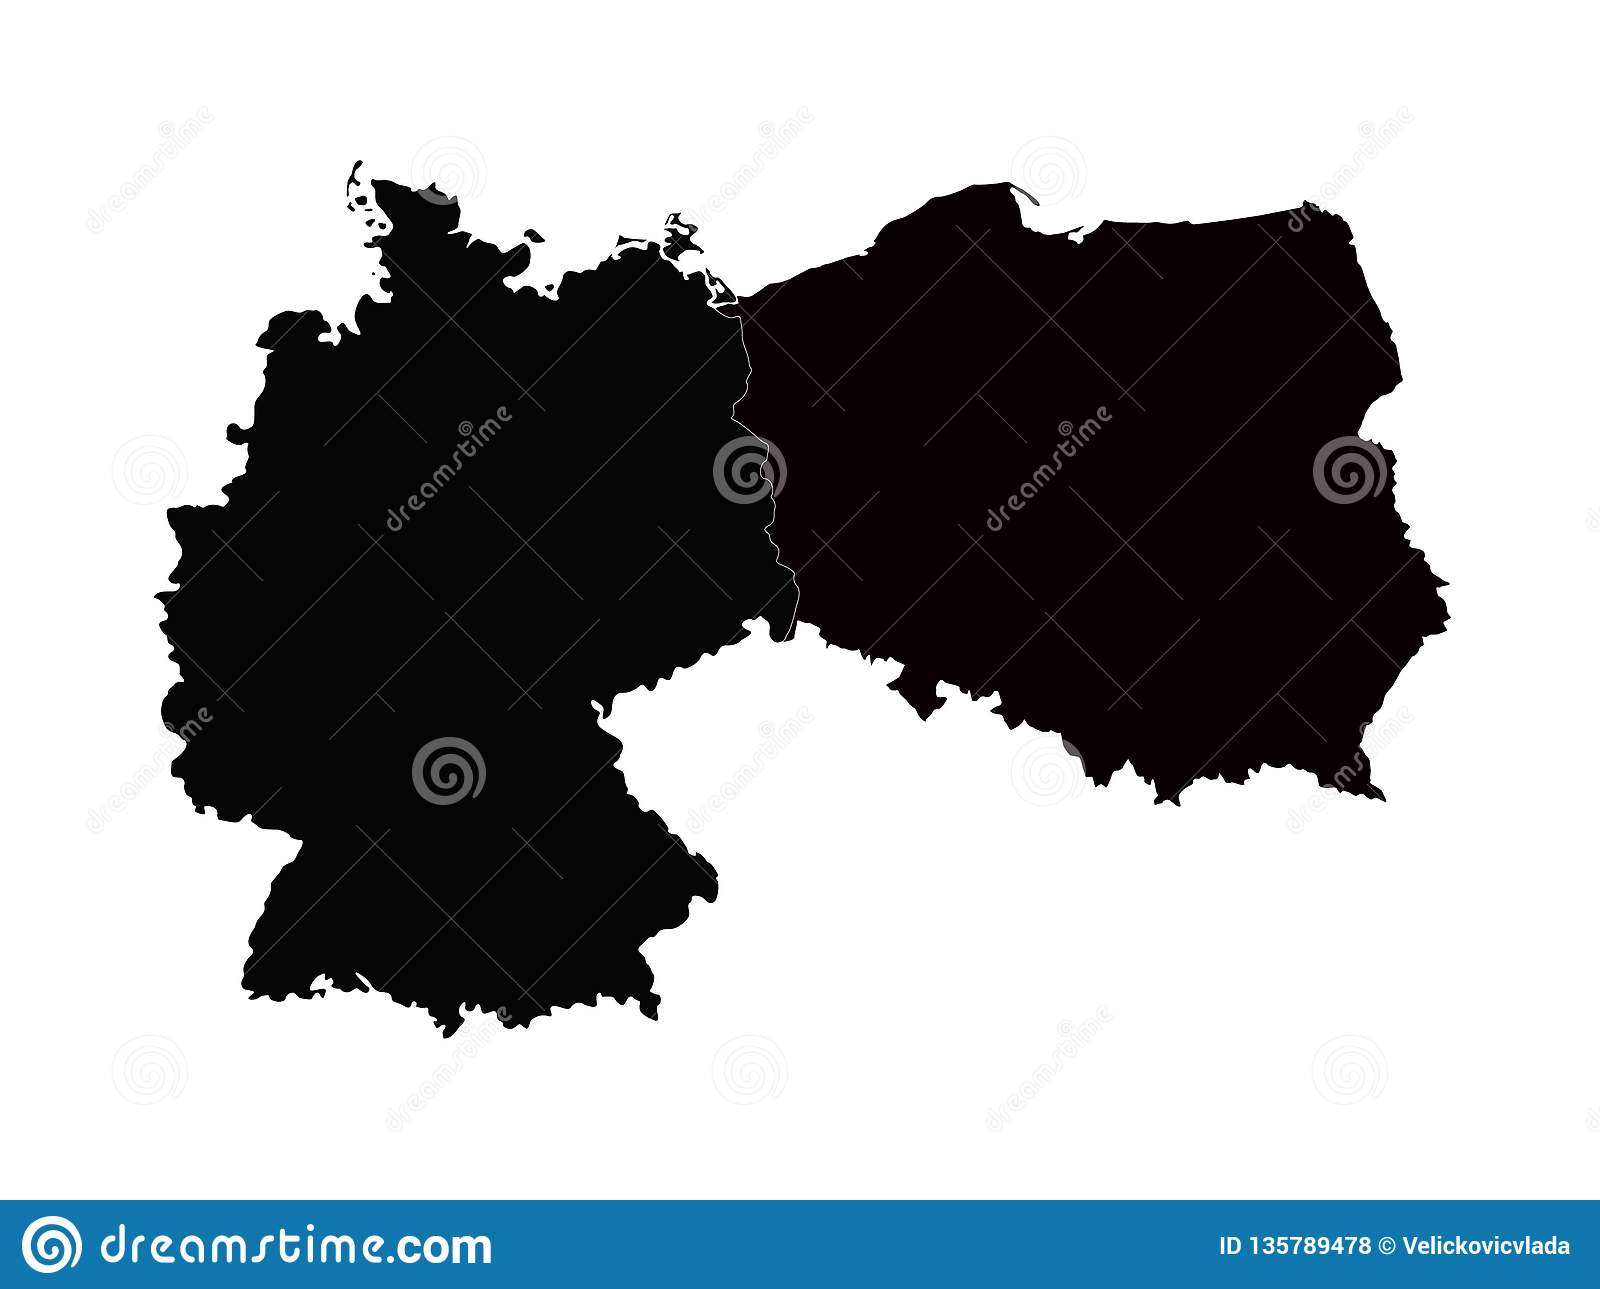 Germany And Poland Maps - Europe Countries Stock Vector ...